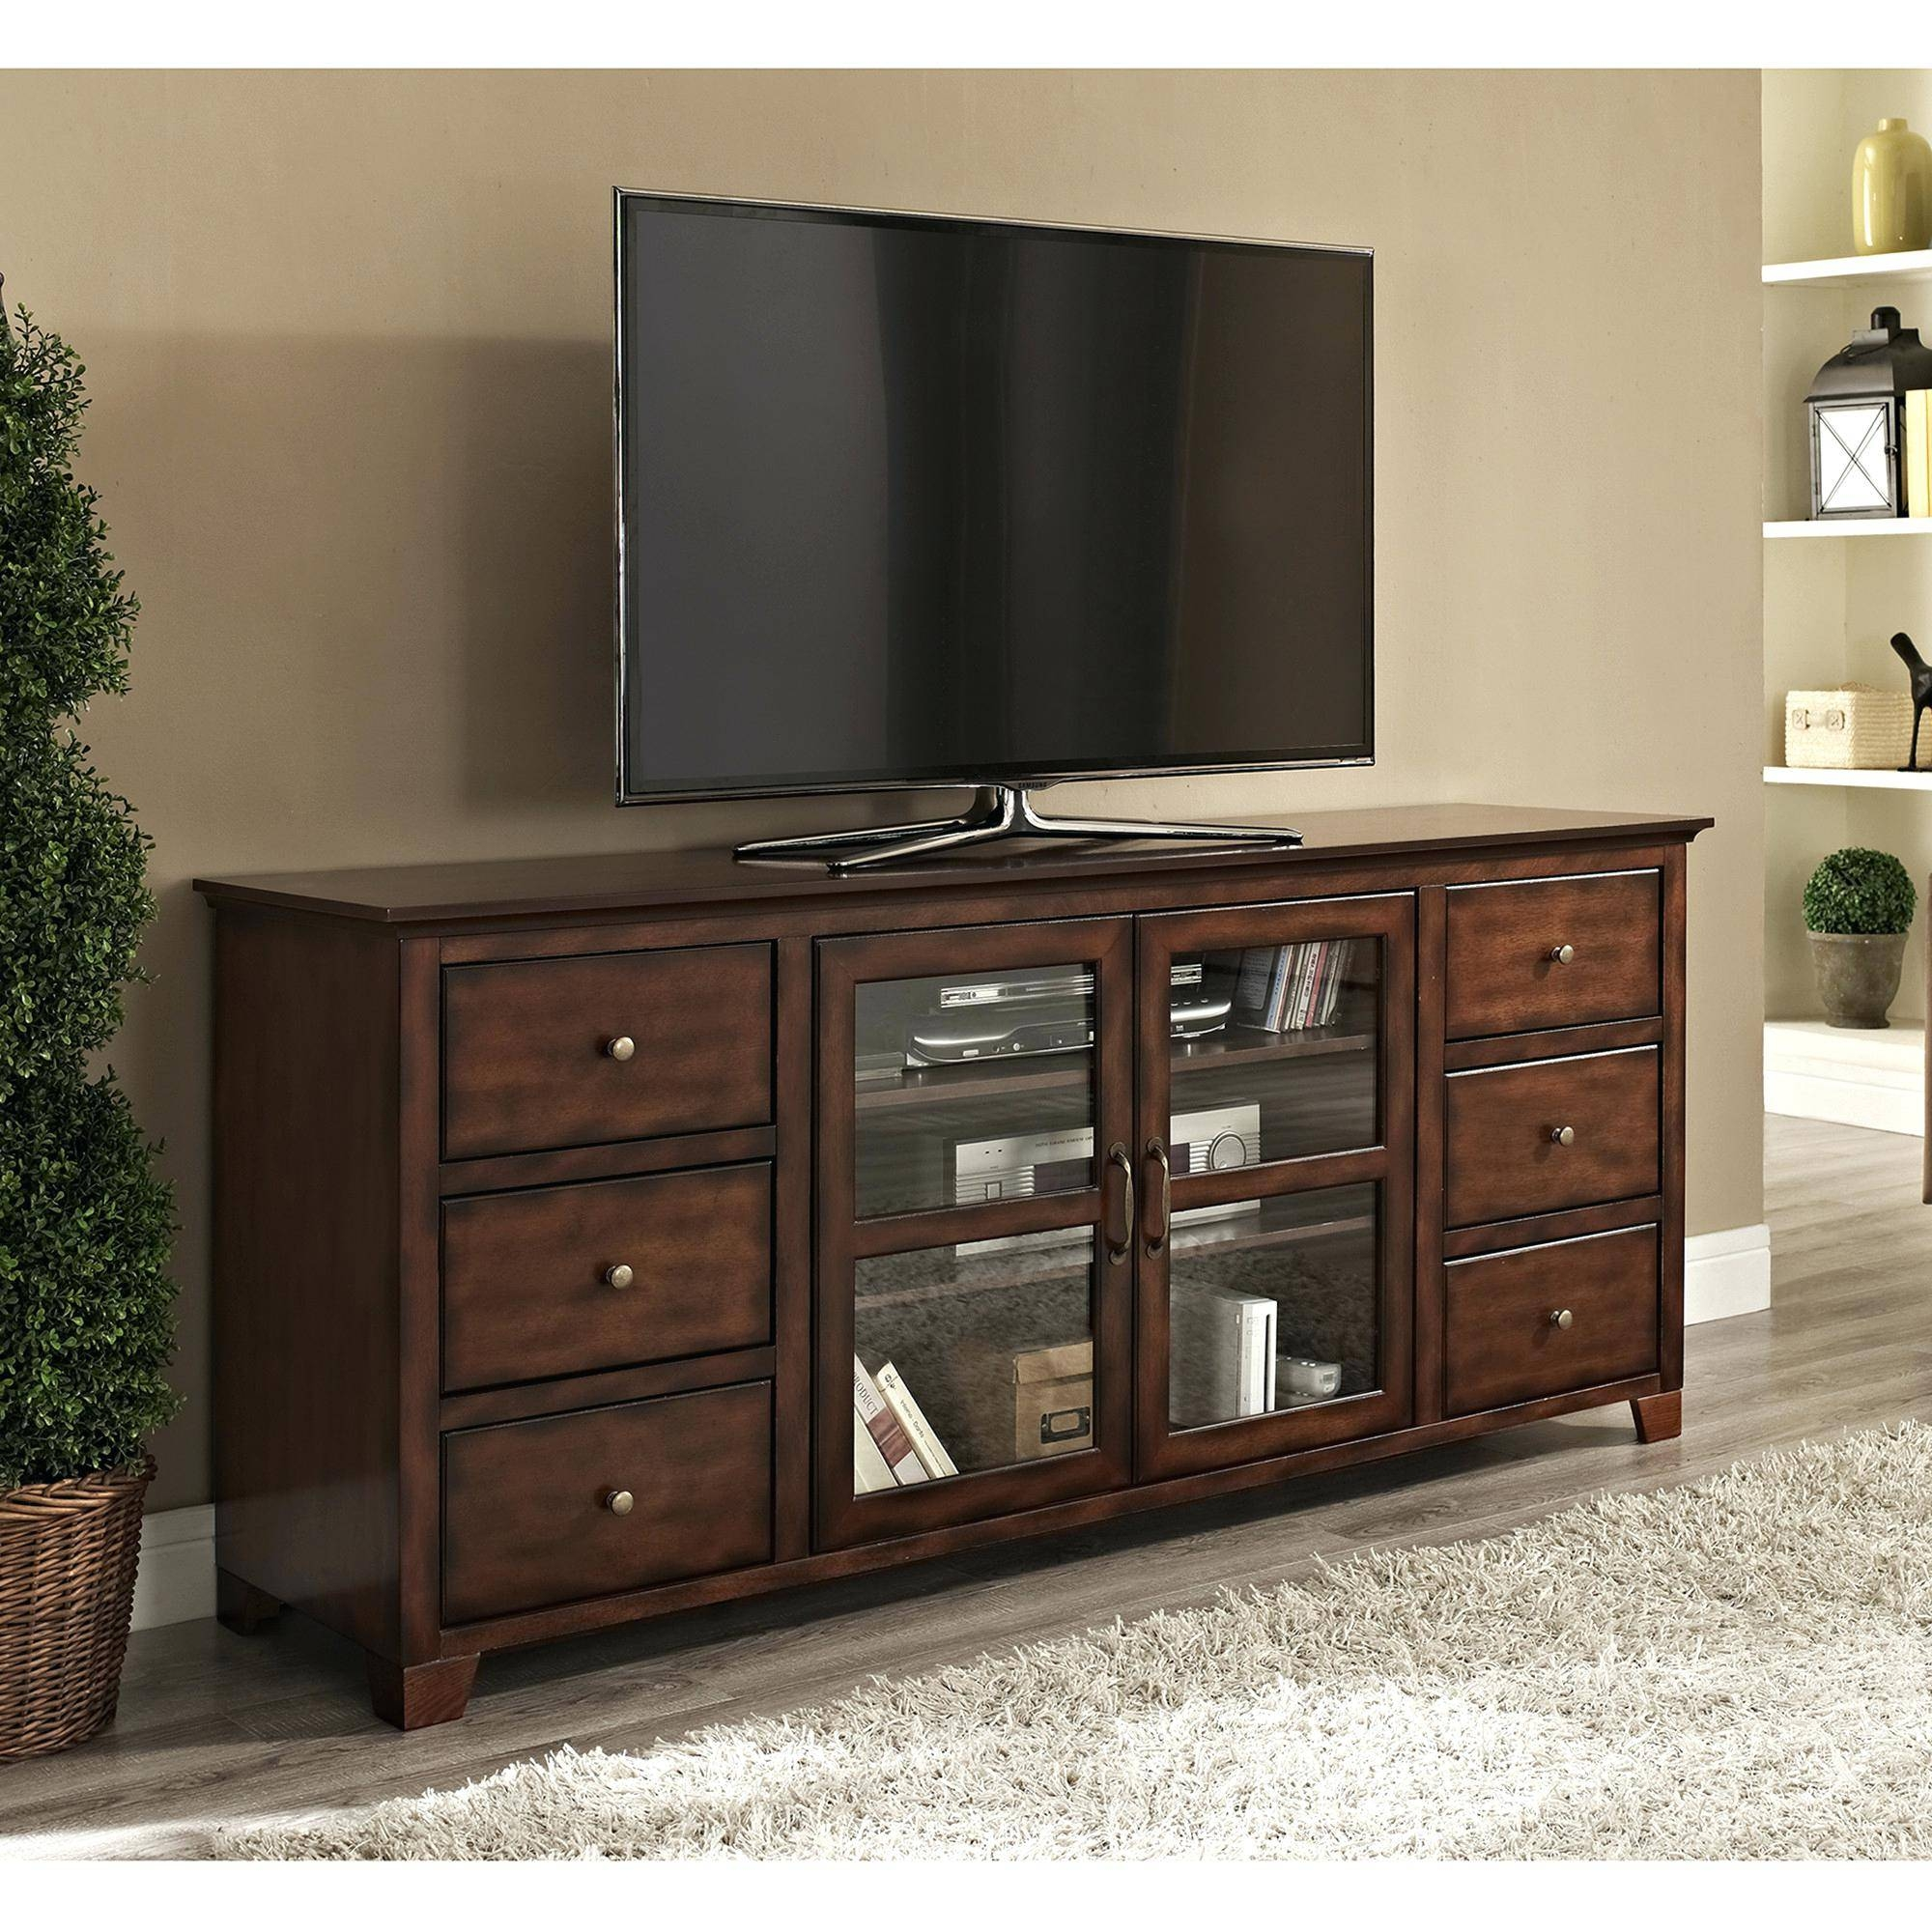 Tv Stand : Amazing 89 Amusing Light Wood Tv Stand Home Design 115 intended for Wooden Tv Stands For Flat Screens (Image 10 of 15)